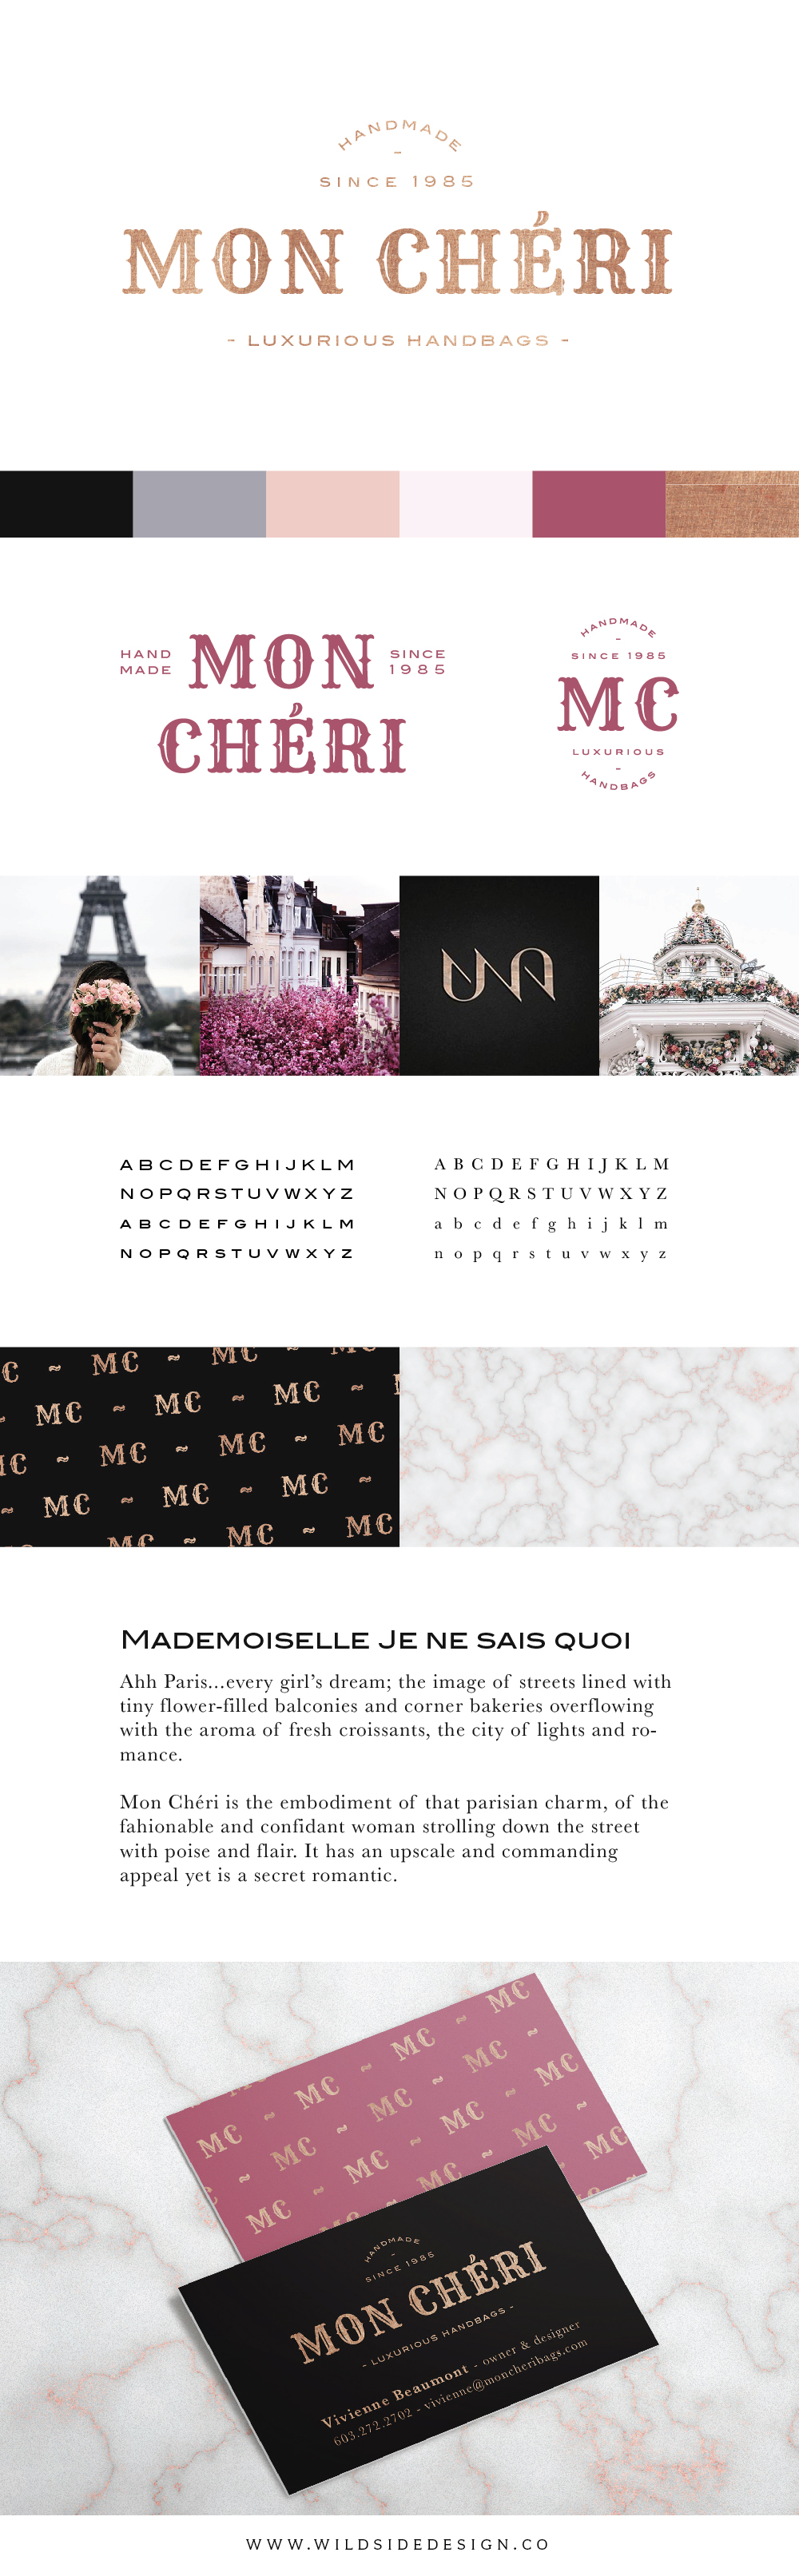 Fashion Monograms Issue Journal of Business & Design